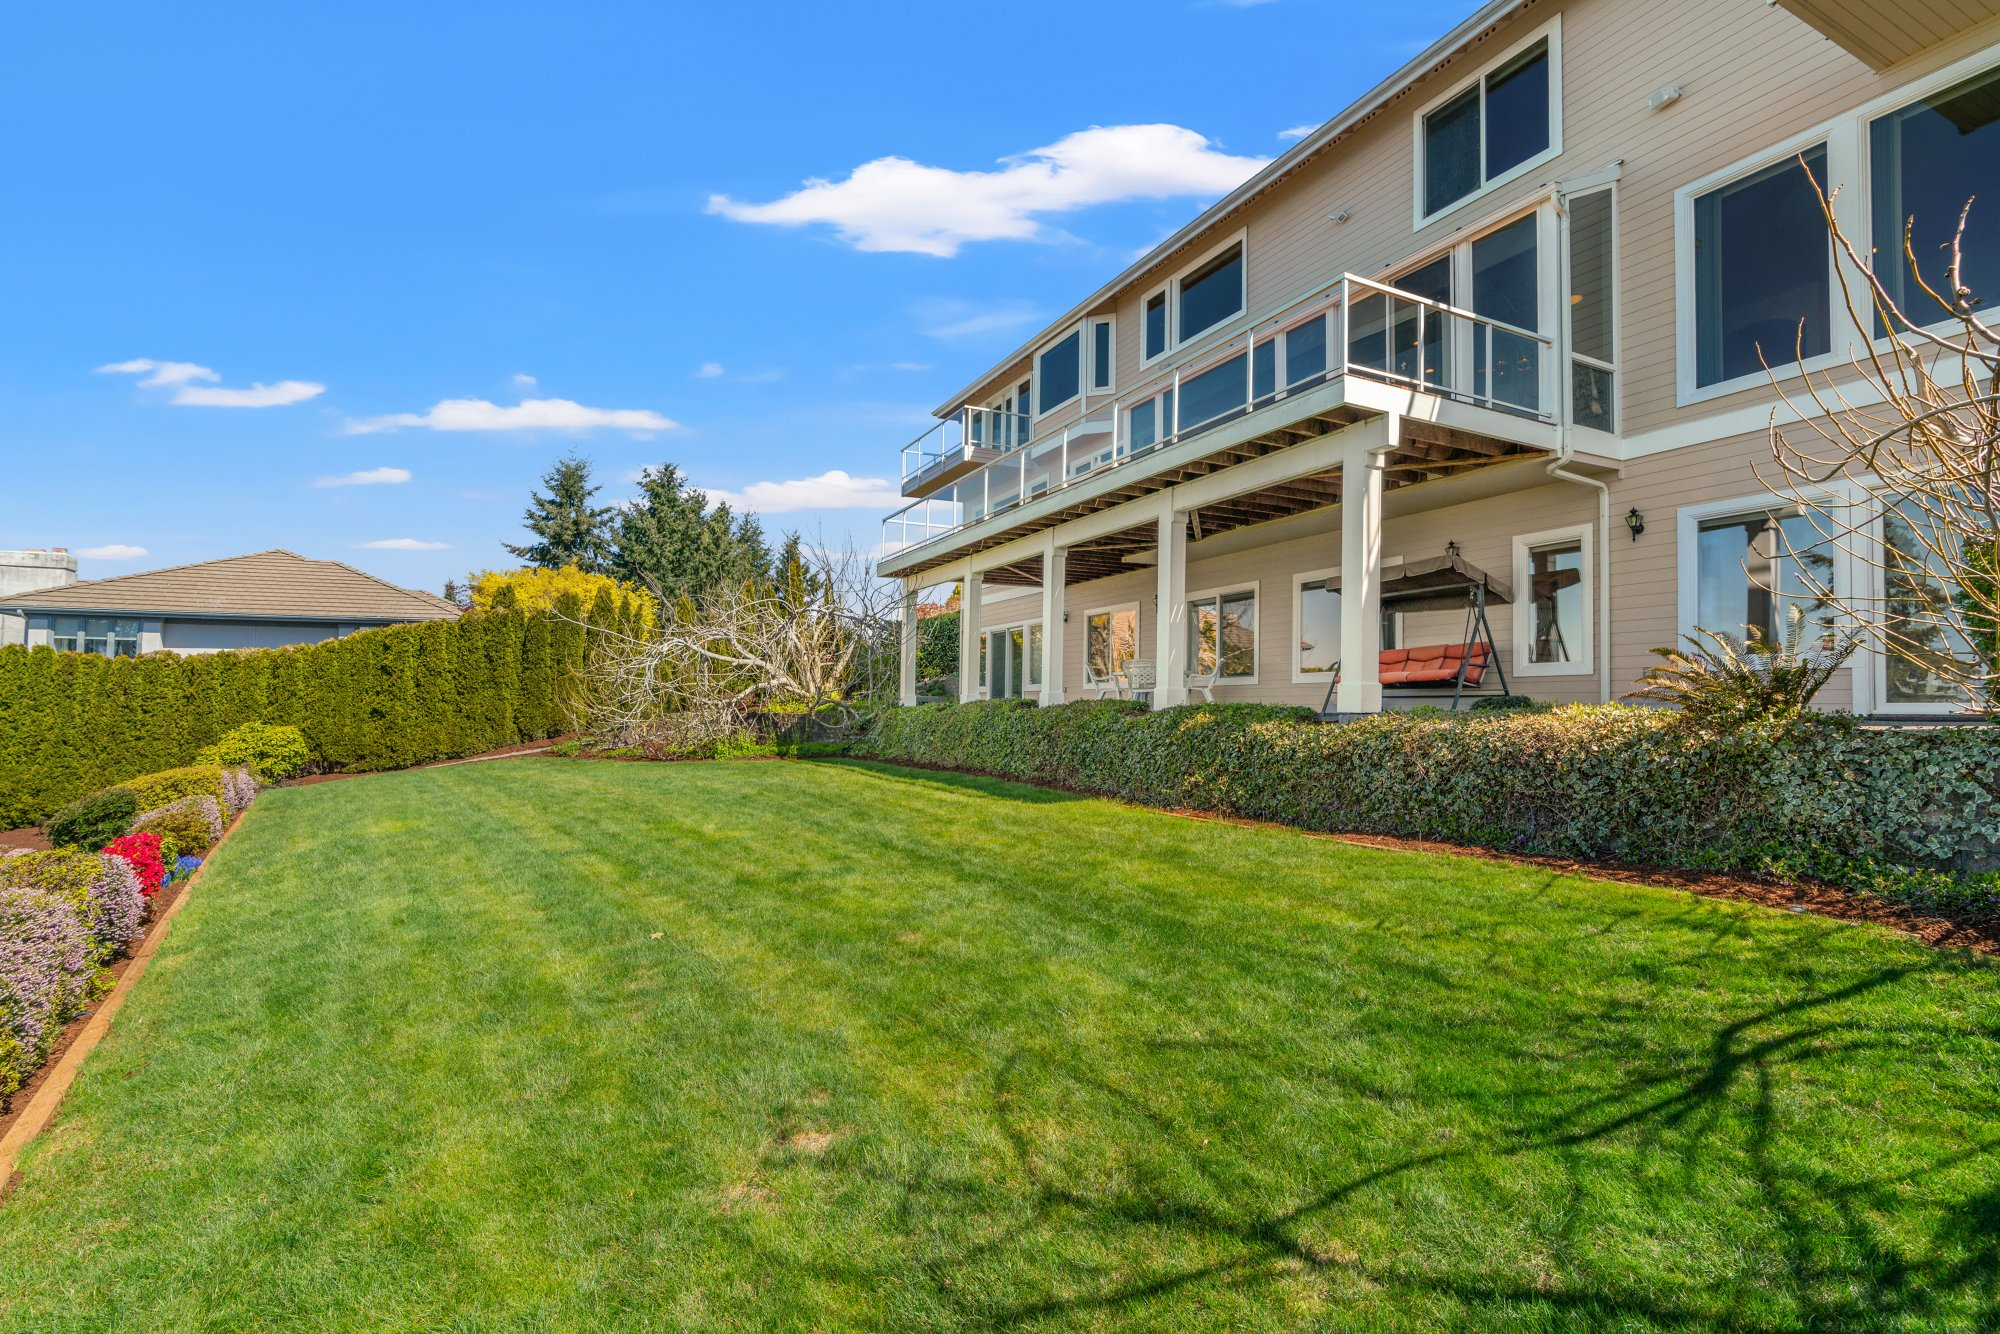 007-1492072ndAvenueWest-Edmonds-WA-98026-SMALL